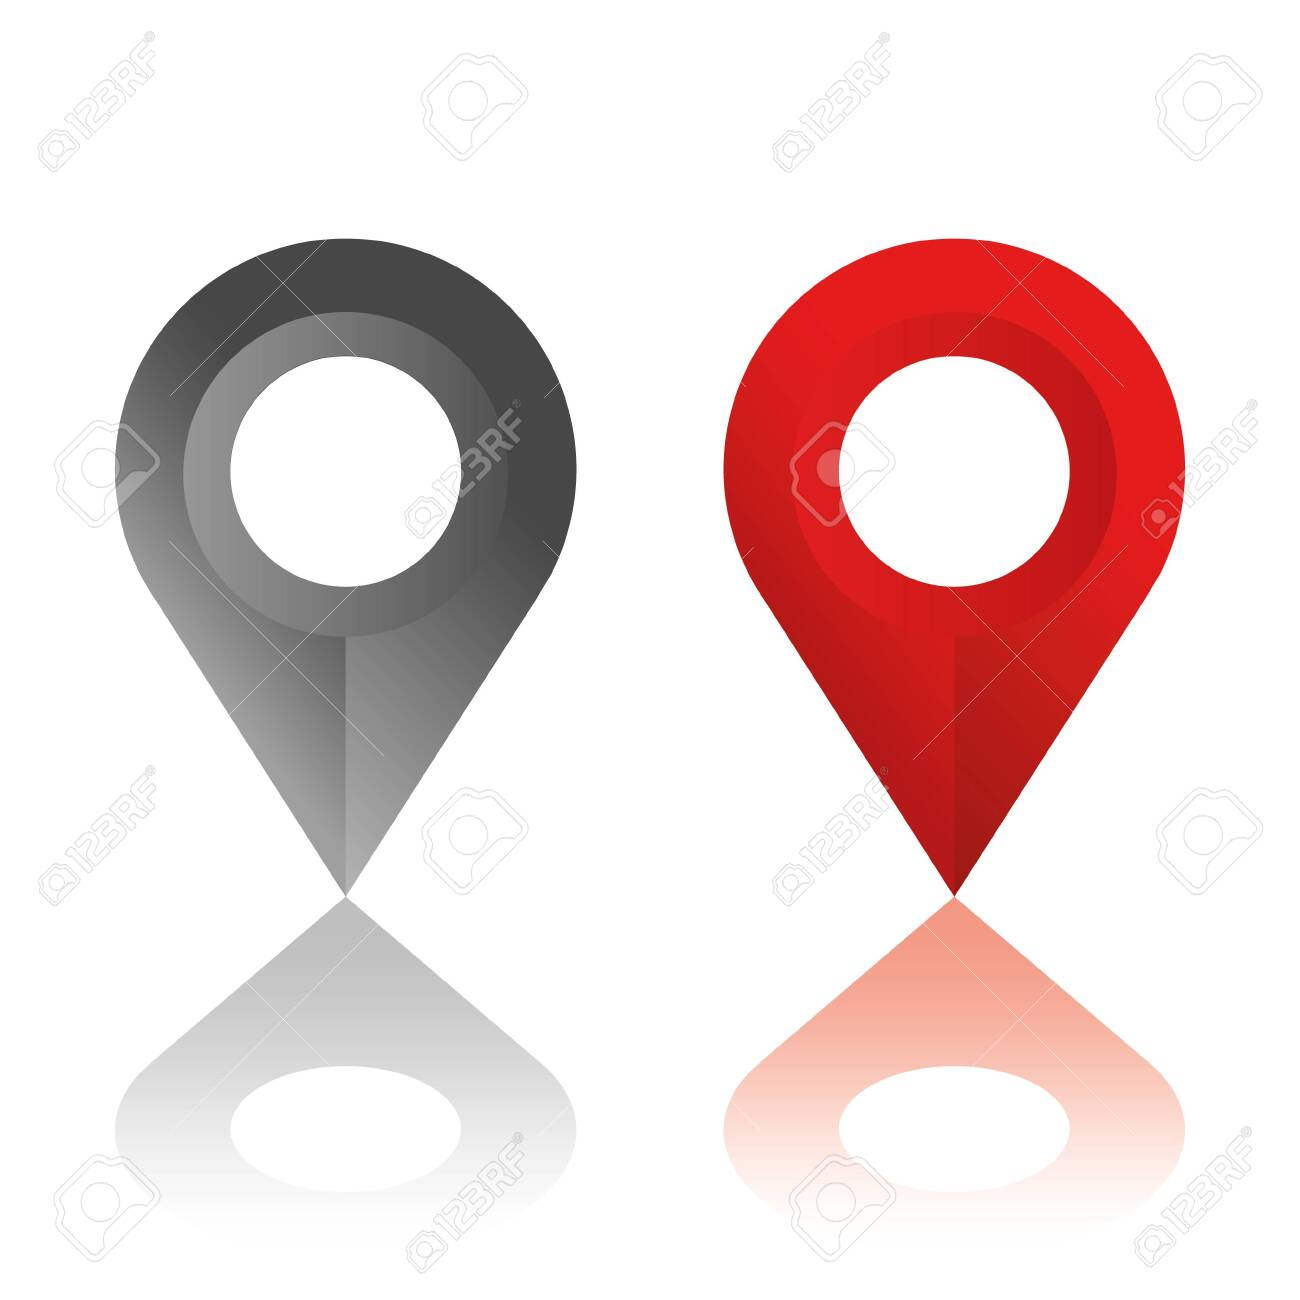 Set of location icons. Modern map markers .Vector illustration on a white background. - 134490933